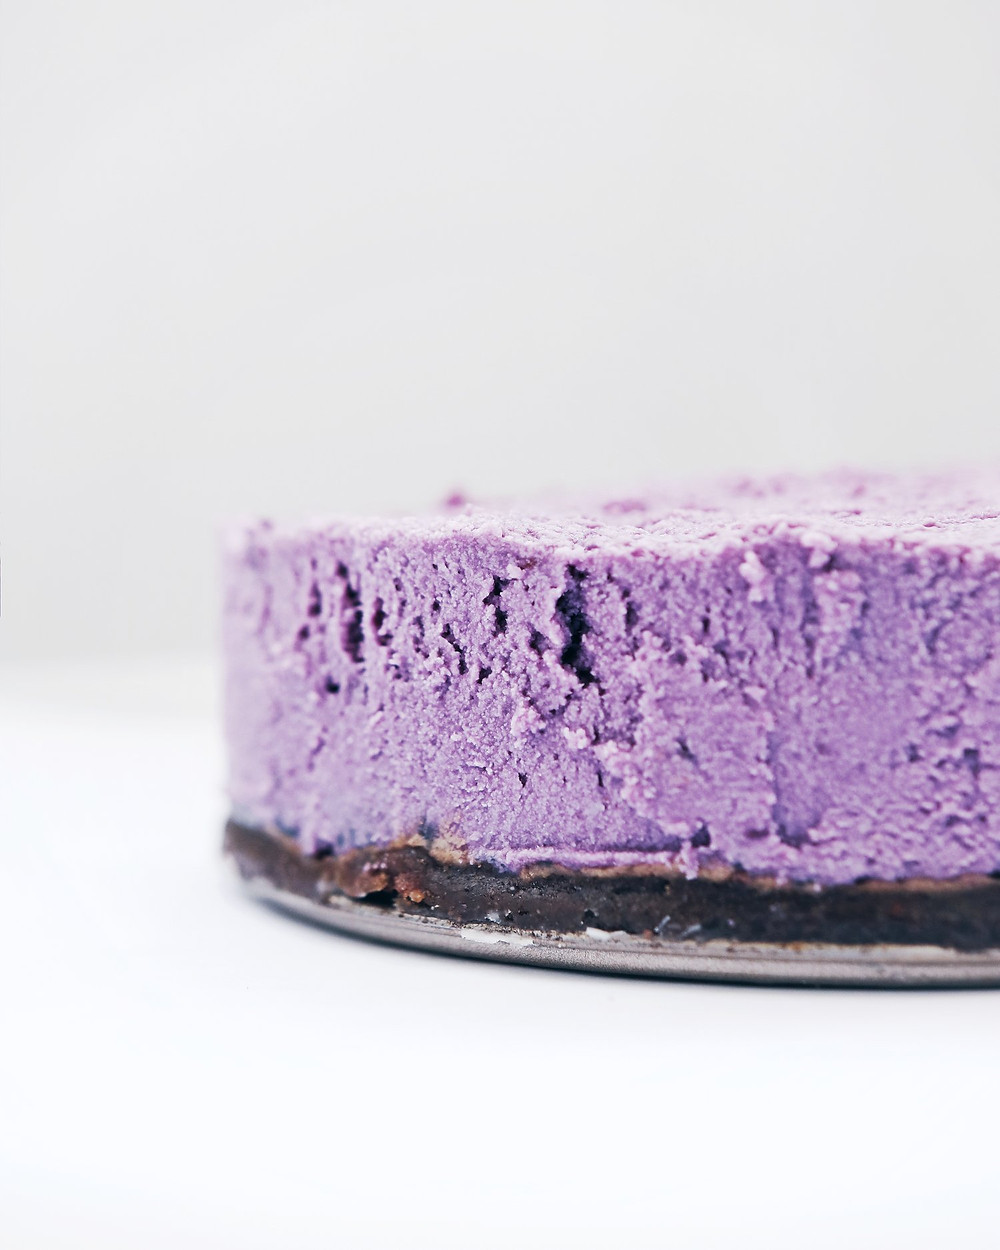 A purple sweet potato cheesecake is viewed from the side. A dark base made from dates and sunflowers is visible along with the violet filling.